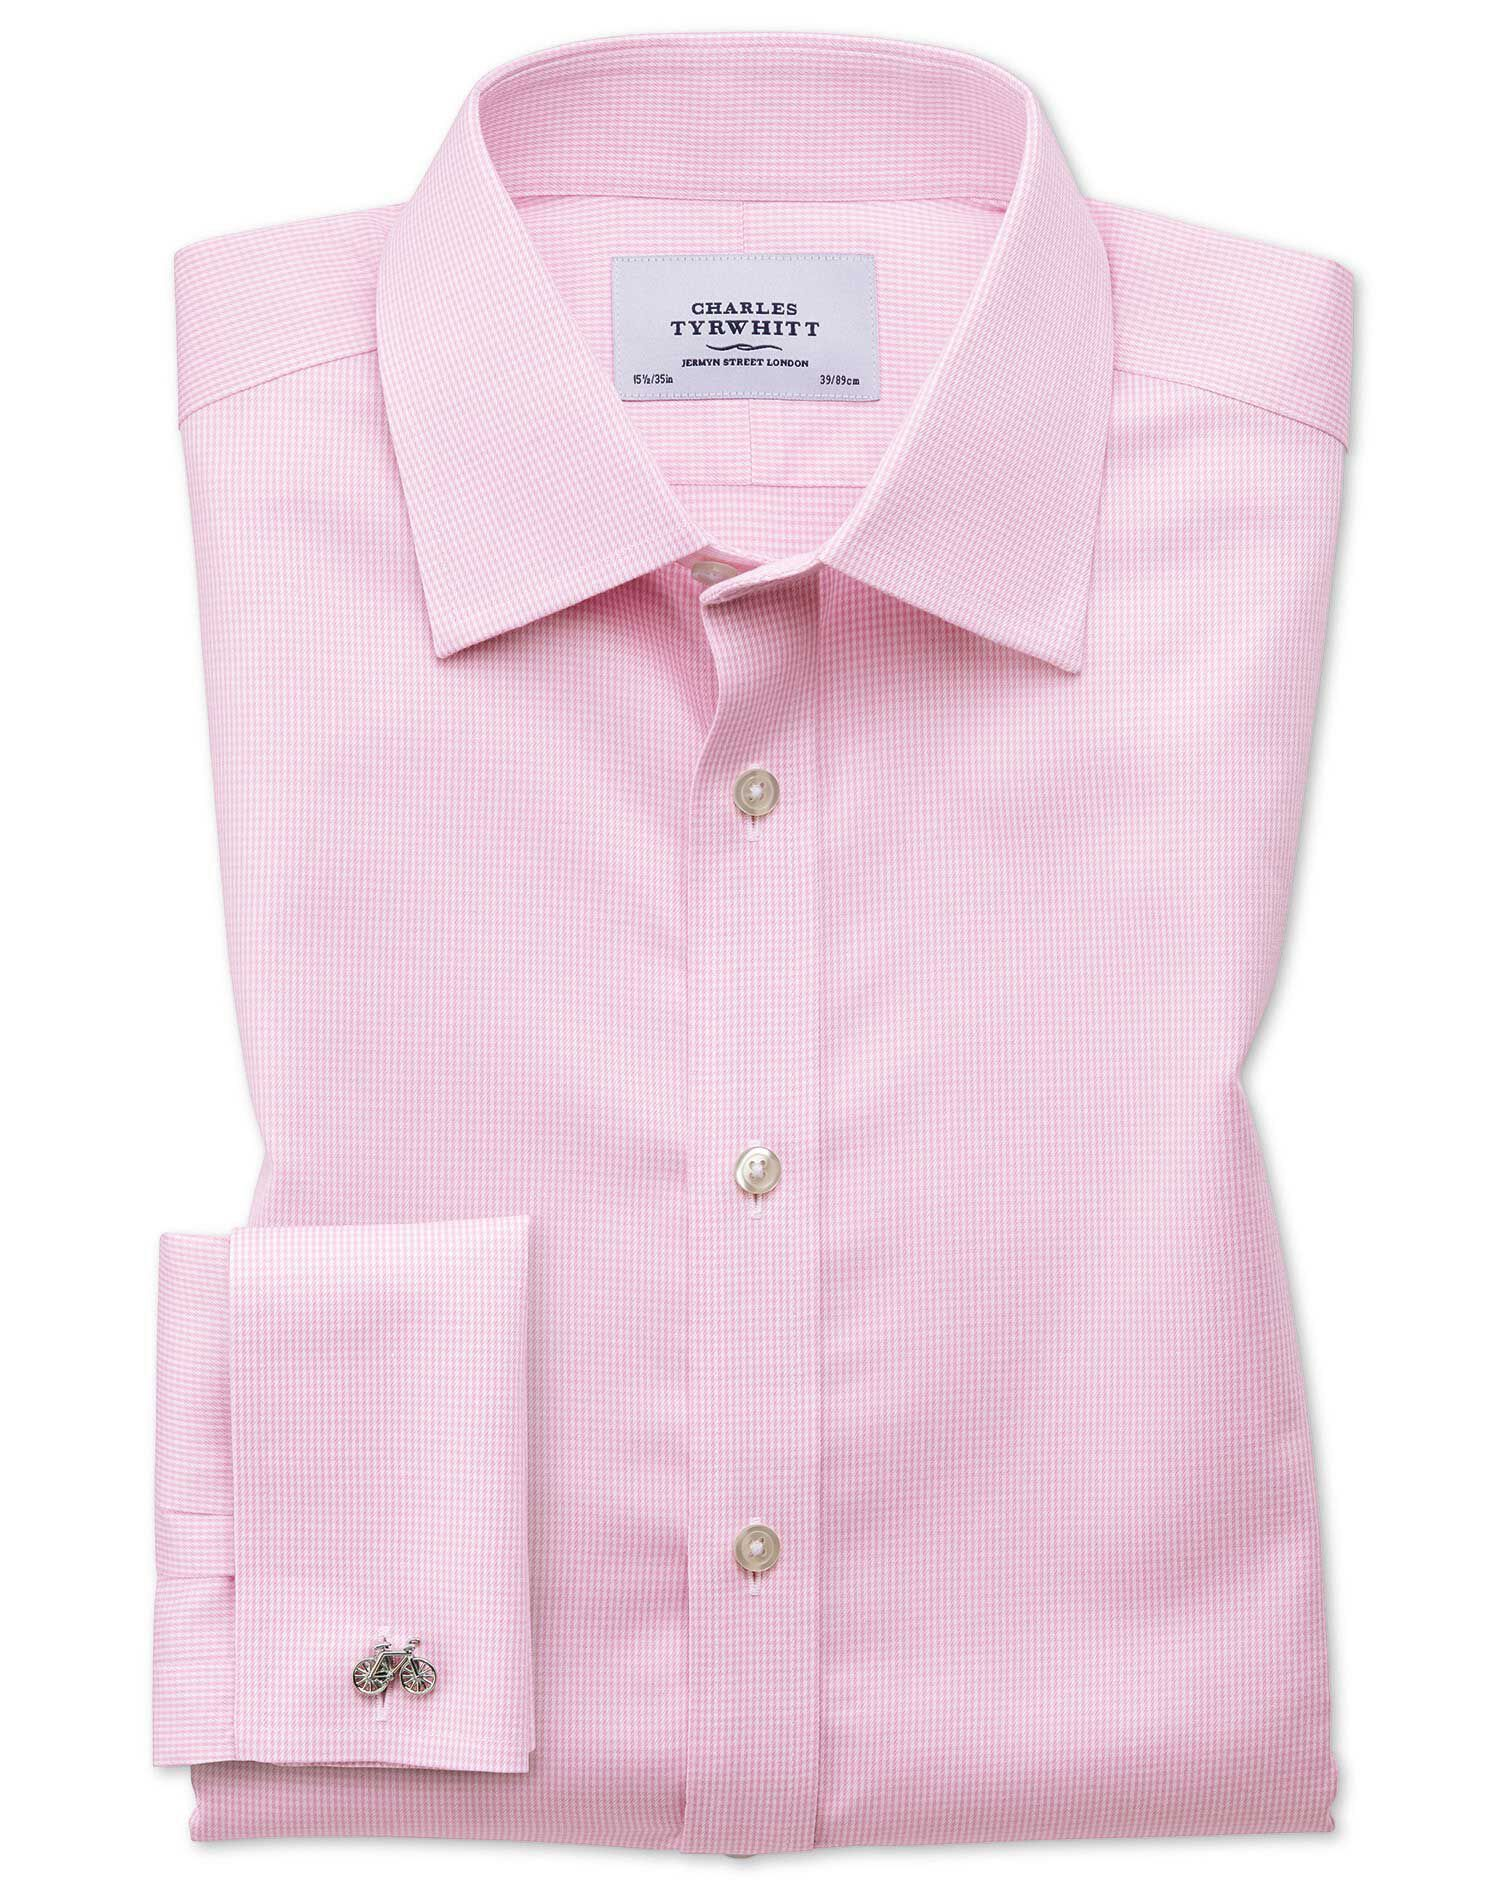 Classic Fit Non-Iron Puppytooth Light Pink Cotton Formal Shirt Single Cuff Size 15.5/34 by Charles T